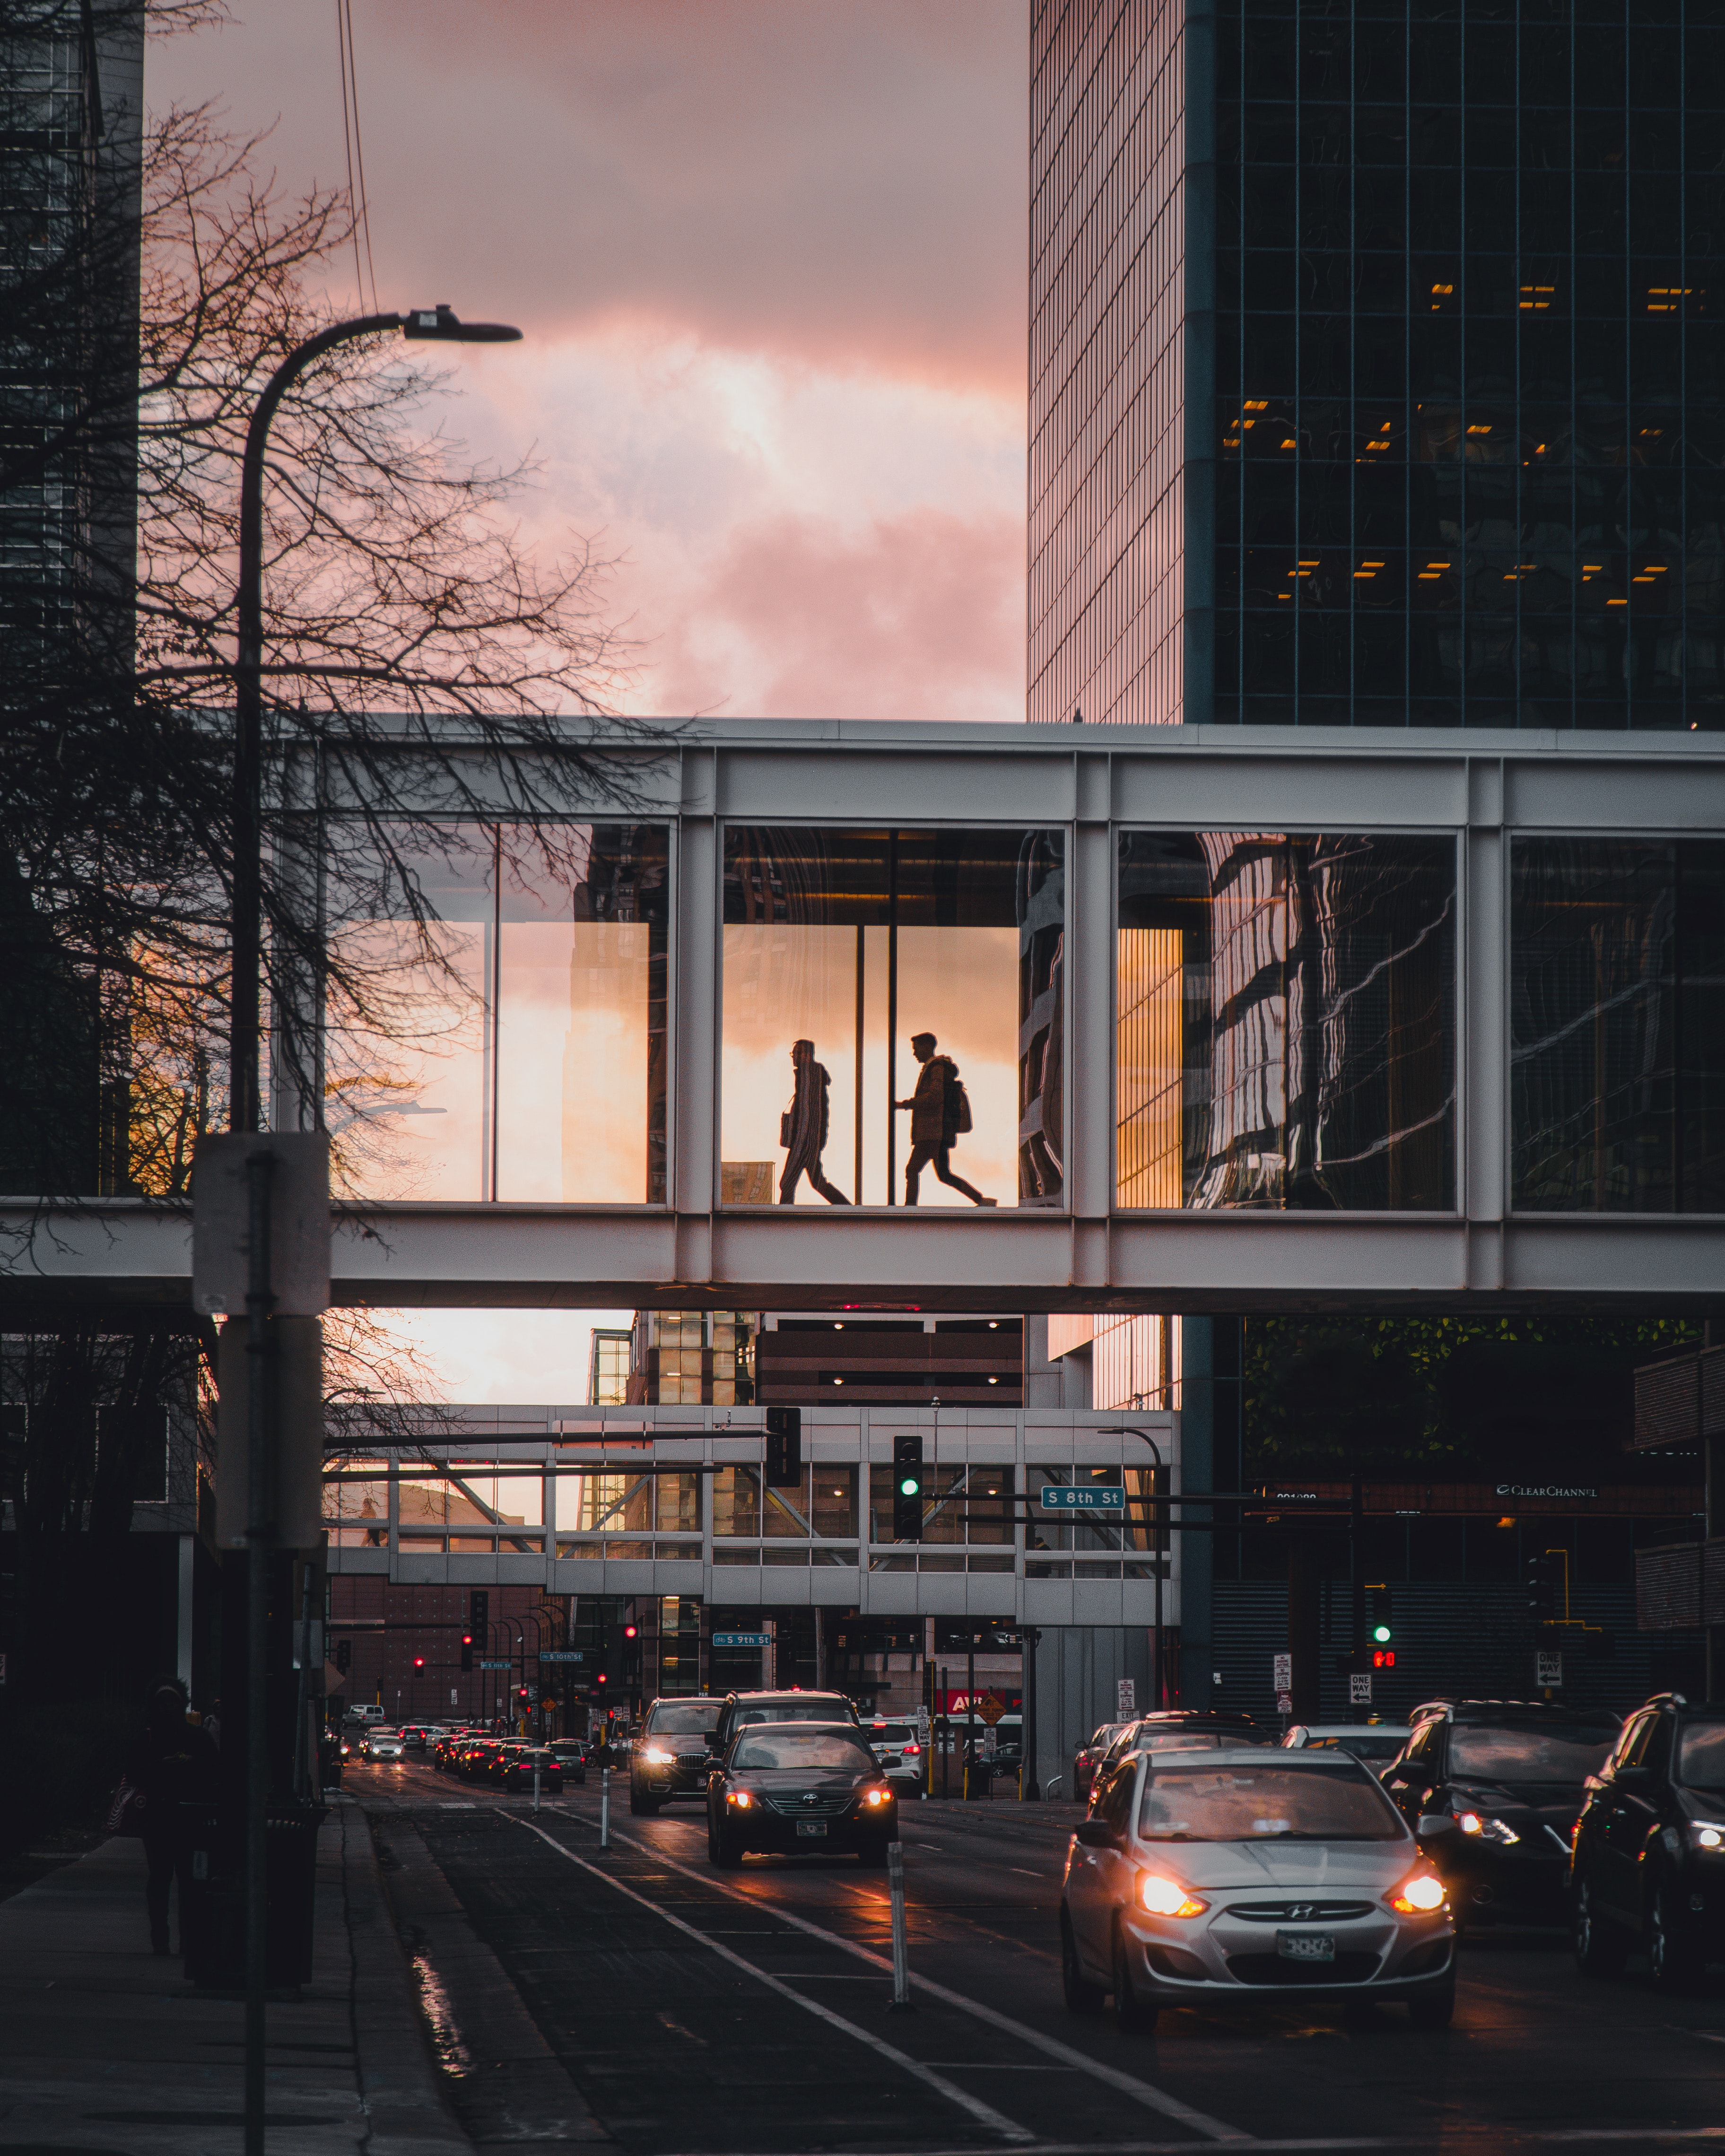 People in above-ground walkway at dusk